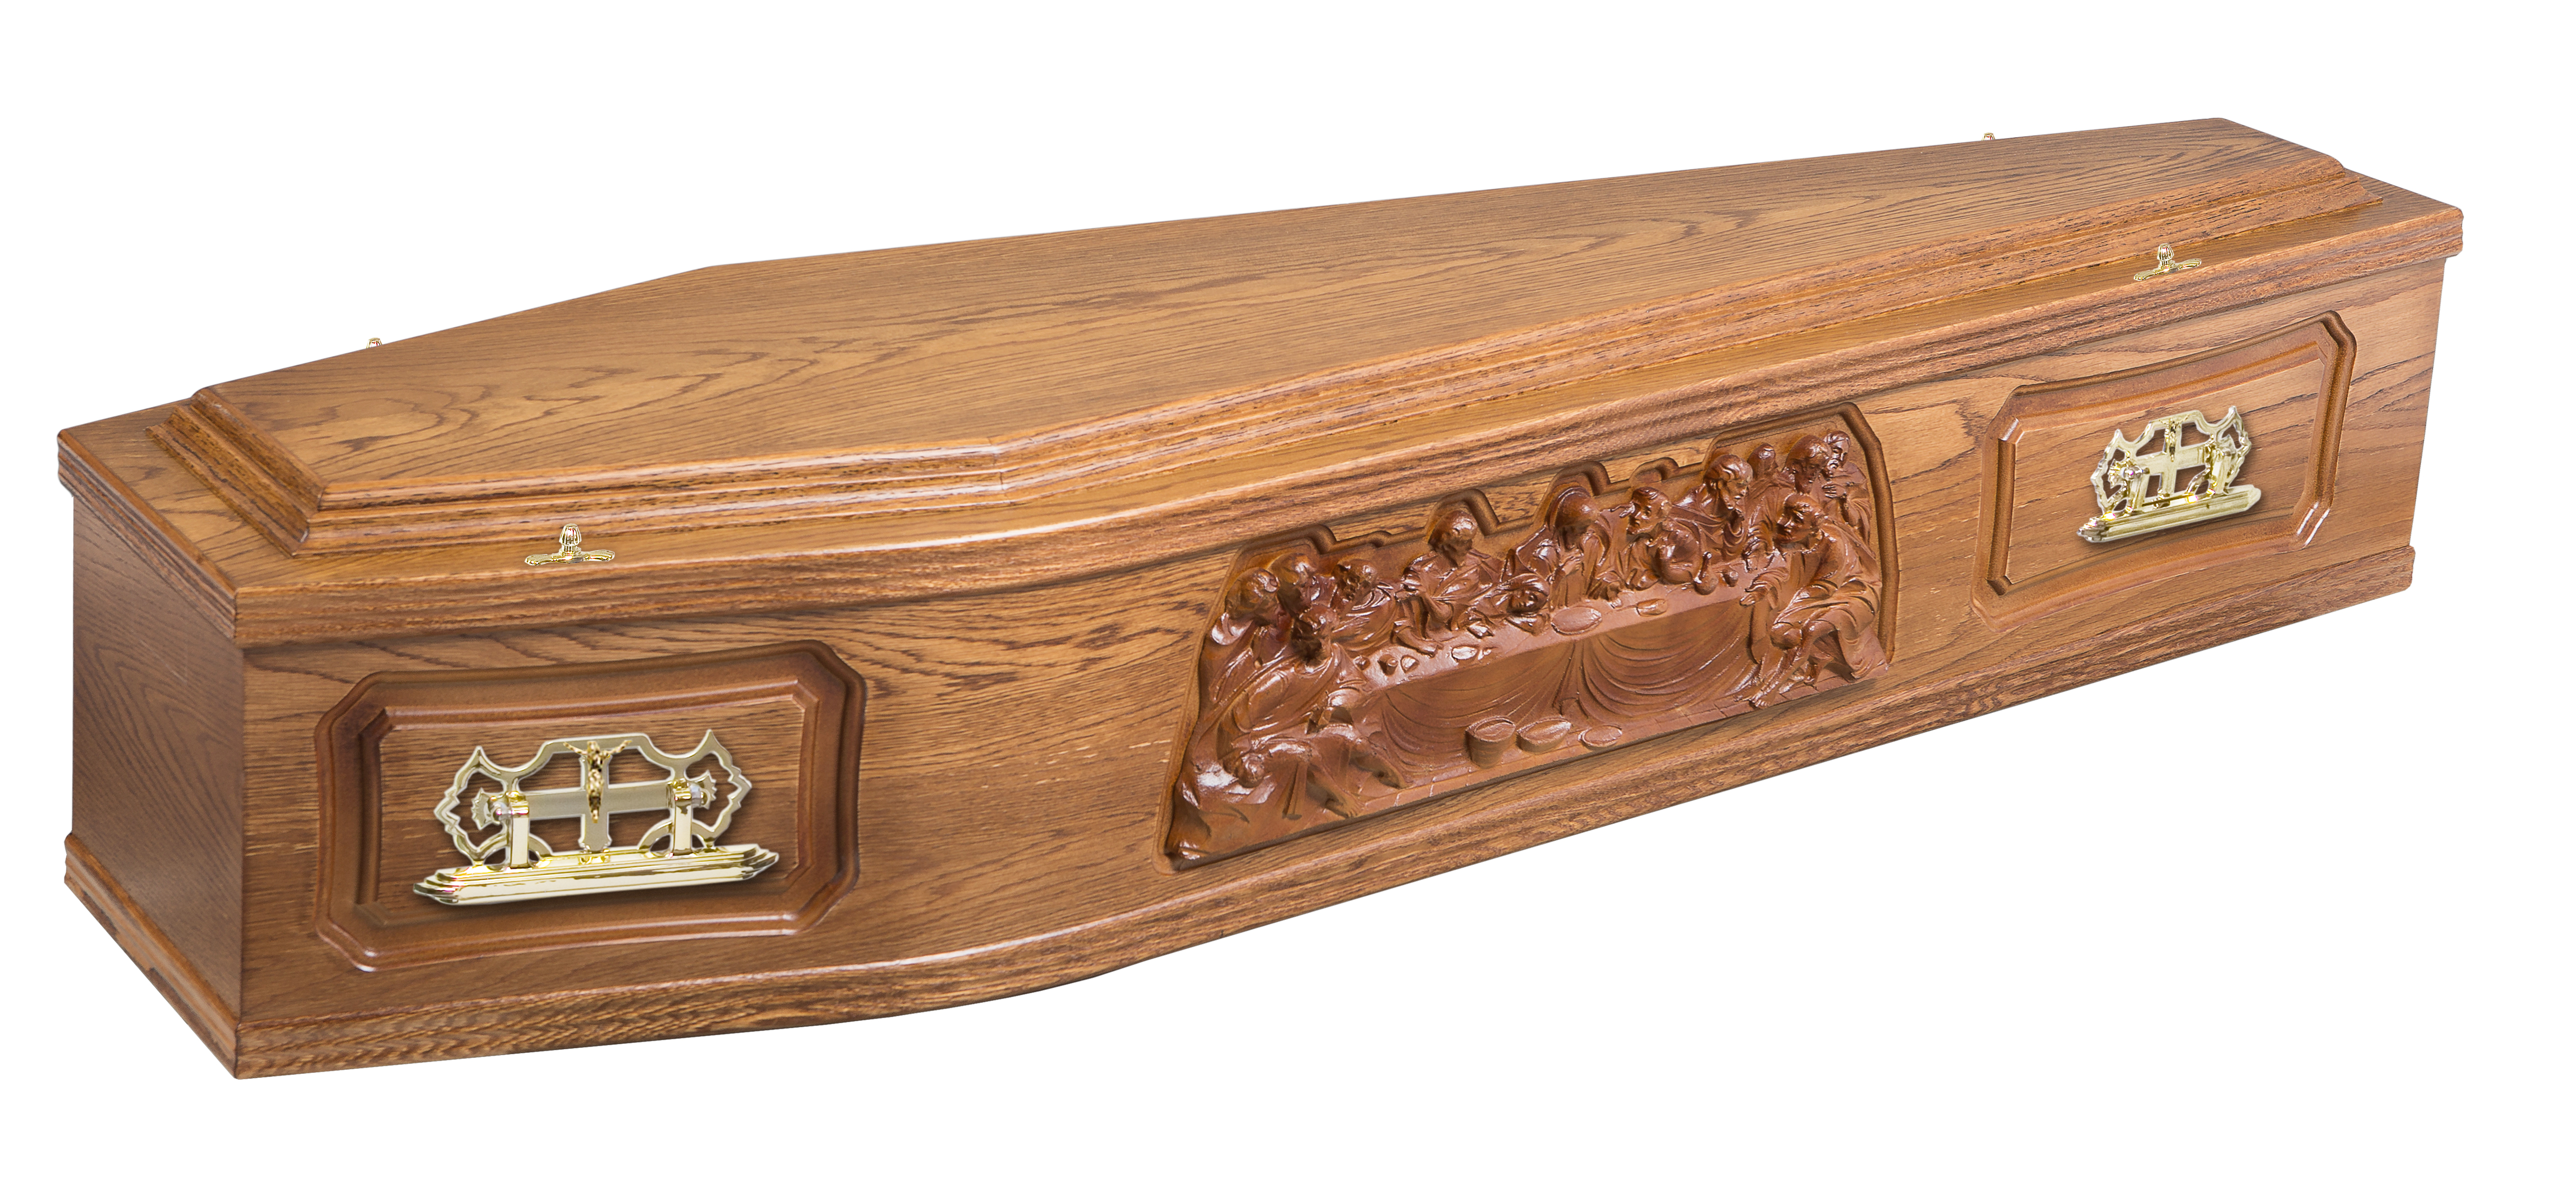 Independent Funeral Services In Gravesend Rochester Erith